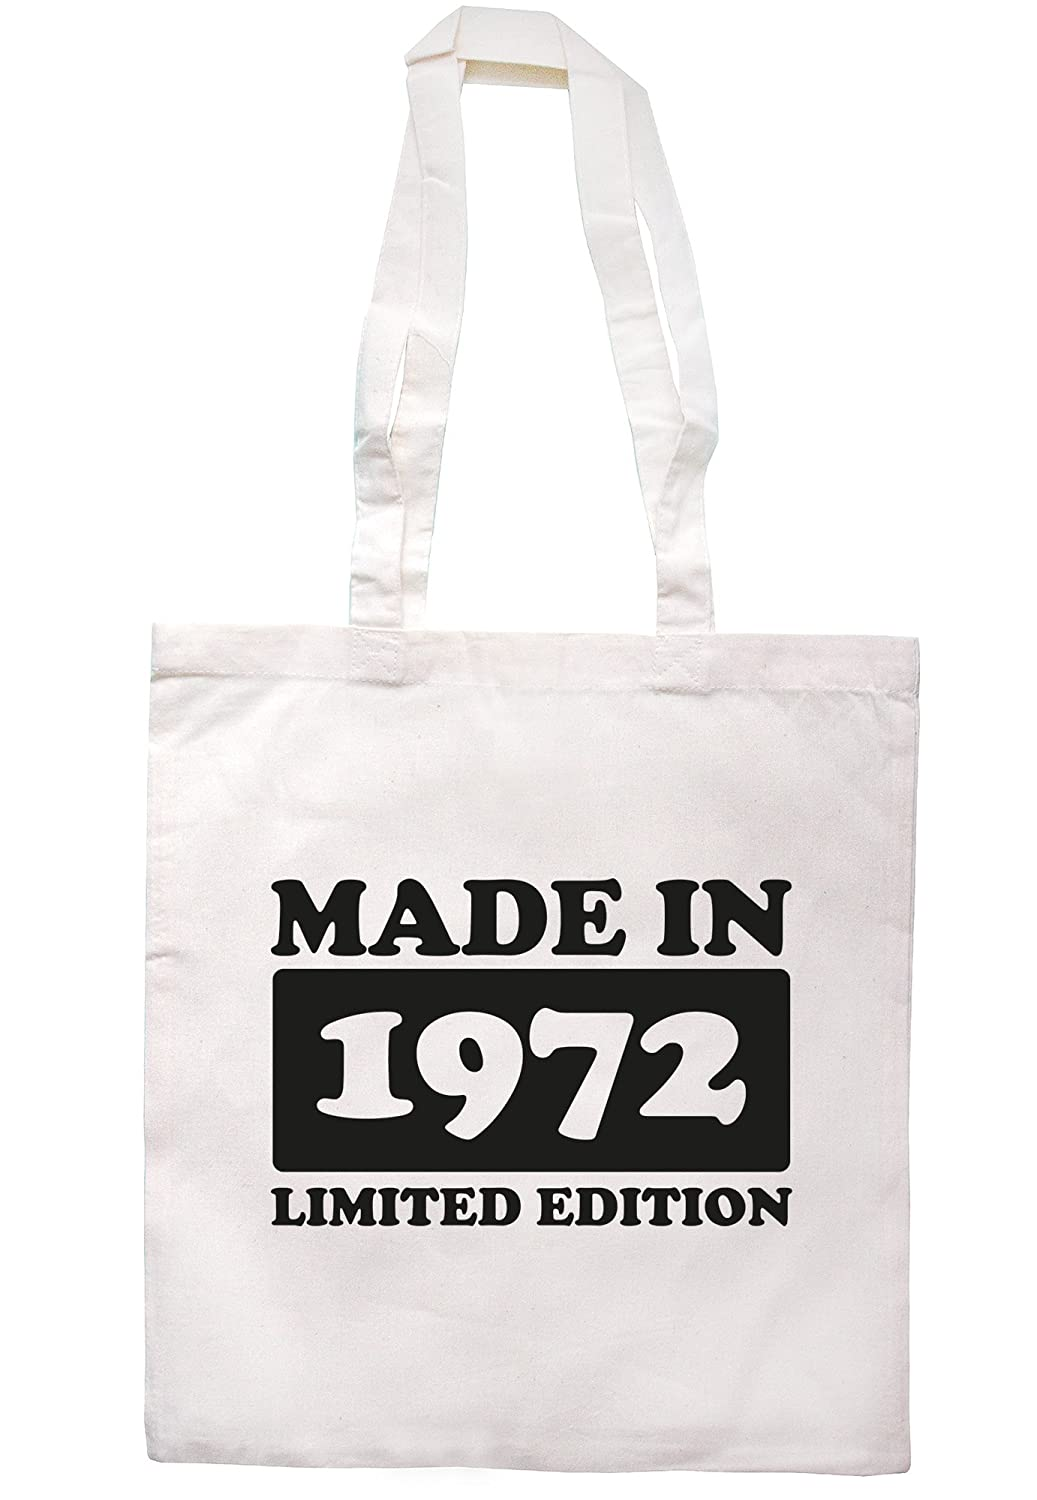 illustratedidentity Made In 1972 Limited Edition Tote Bag 37.5cm x 42cm with long handles